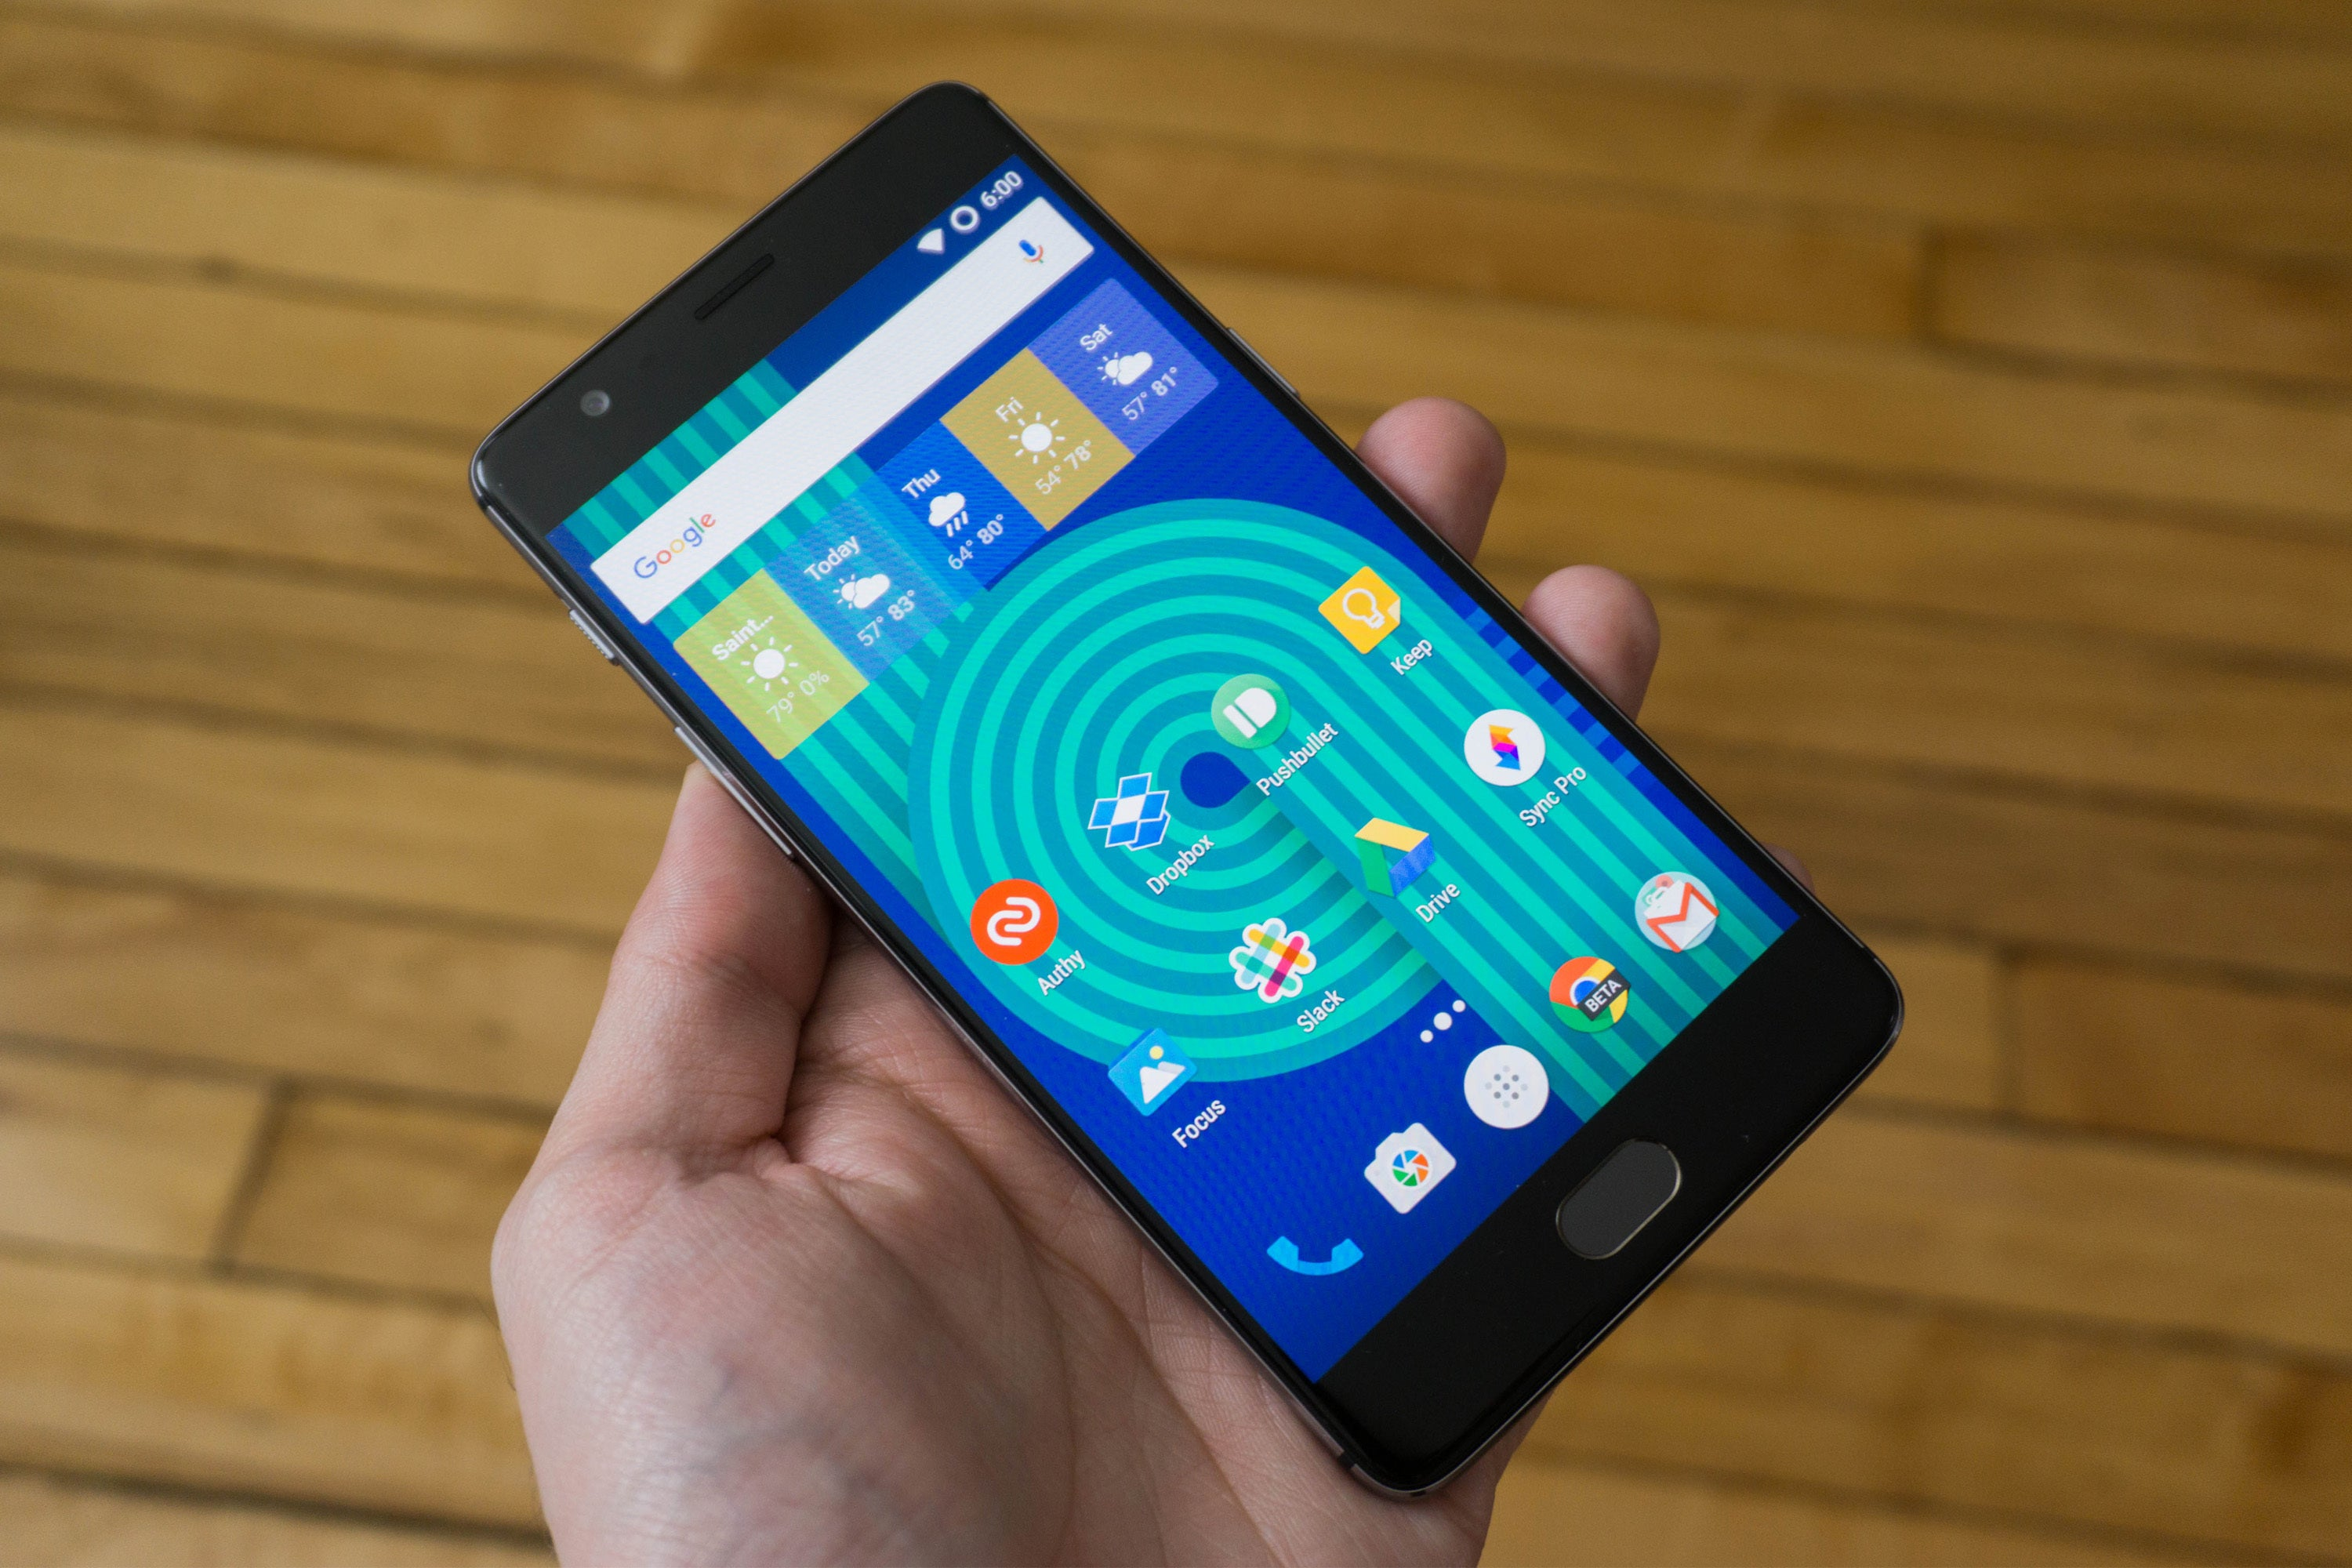 10 tips to make your OnePlus 3 the best phone it can be